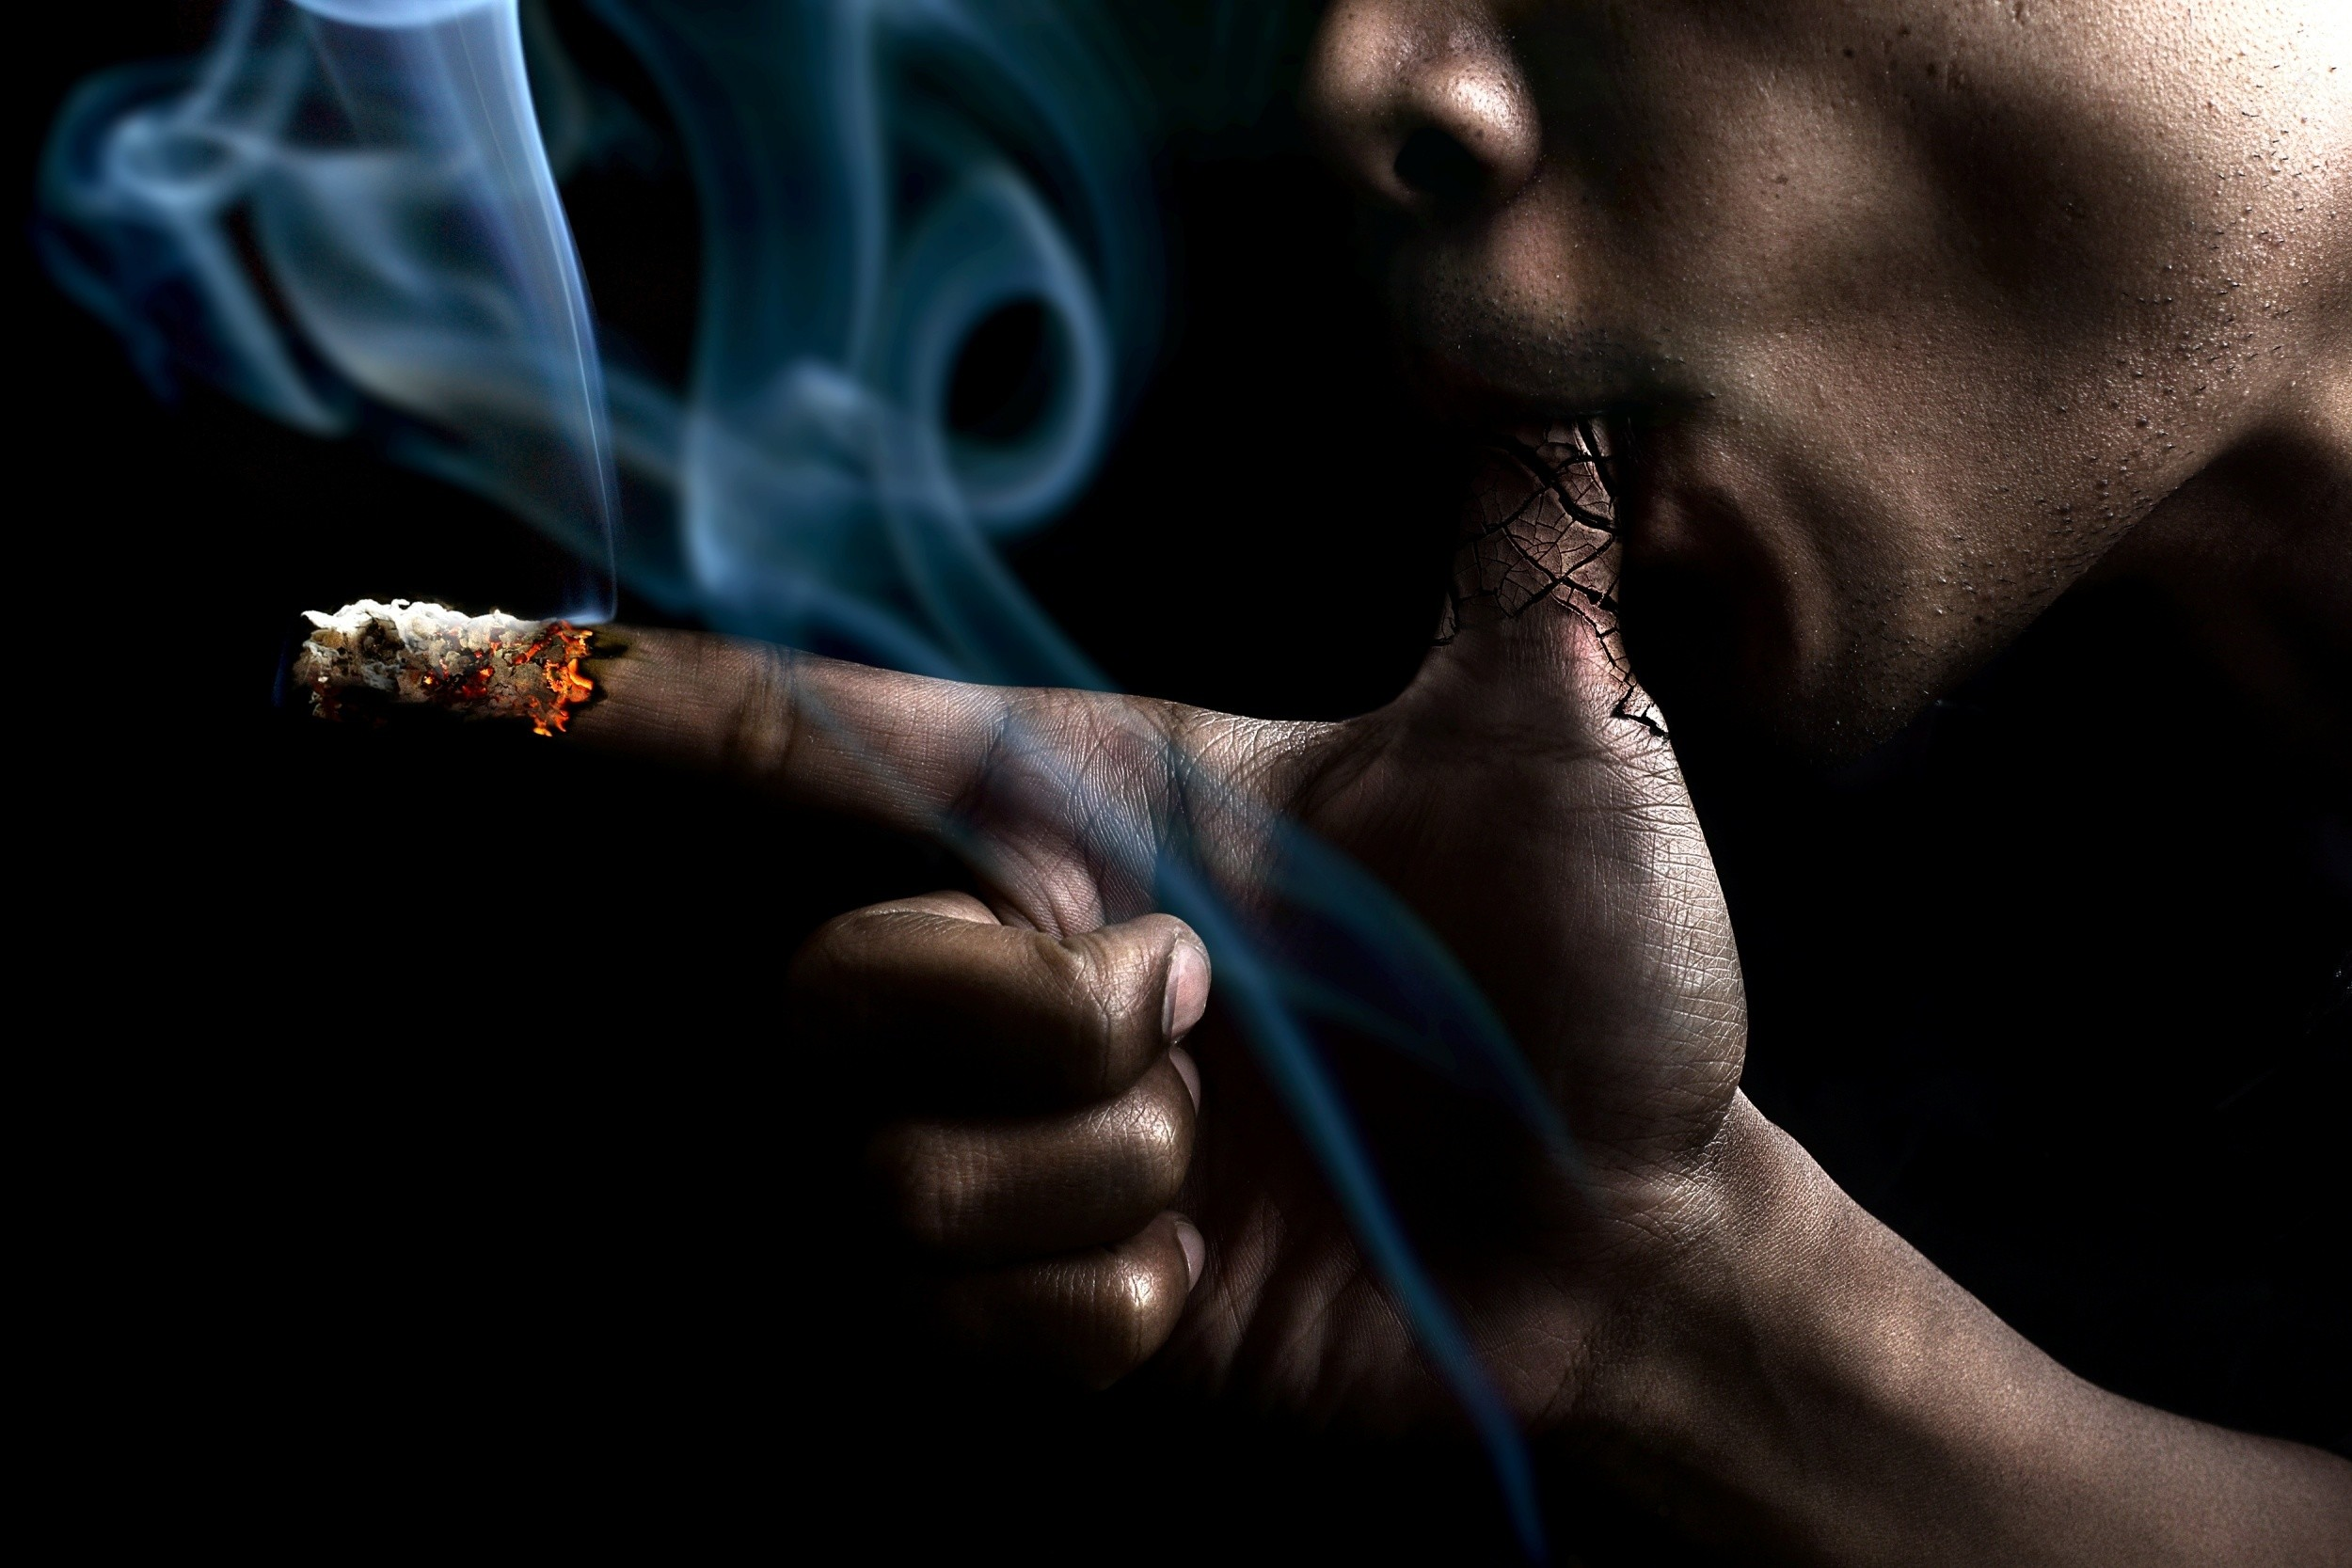 Smoking guns wallpaper 55 images - No smoking wallpaper download ...